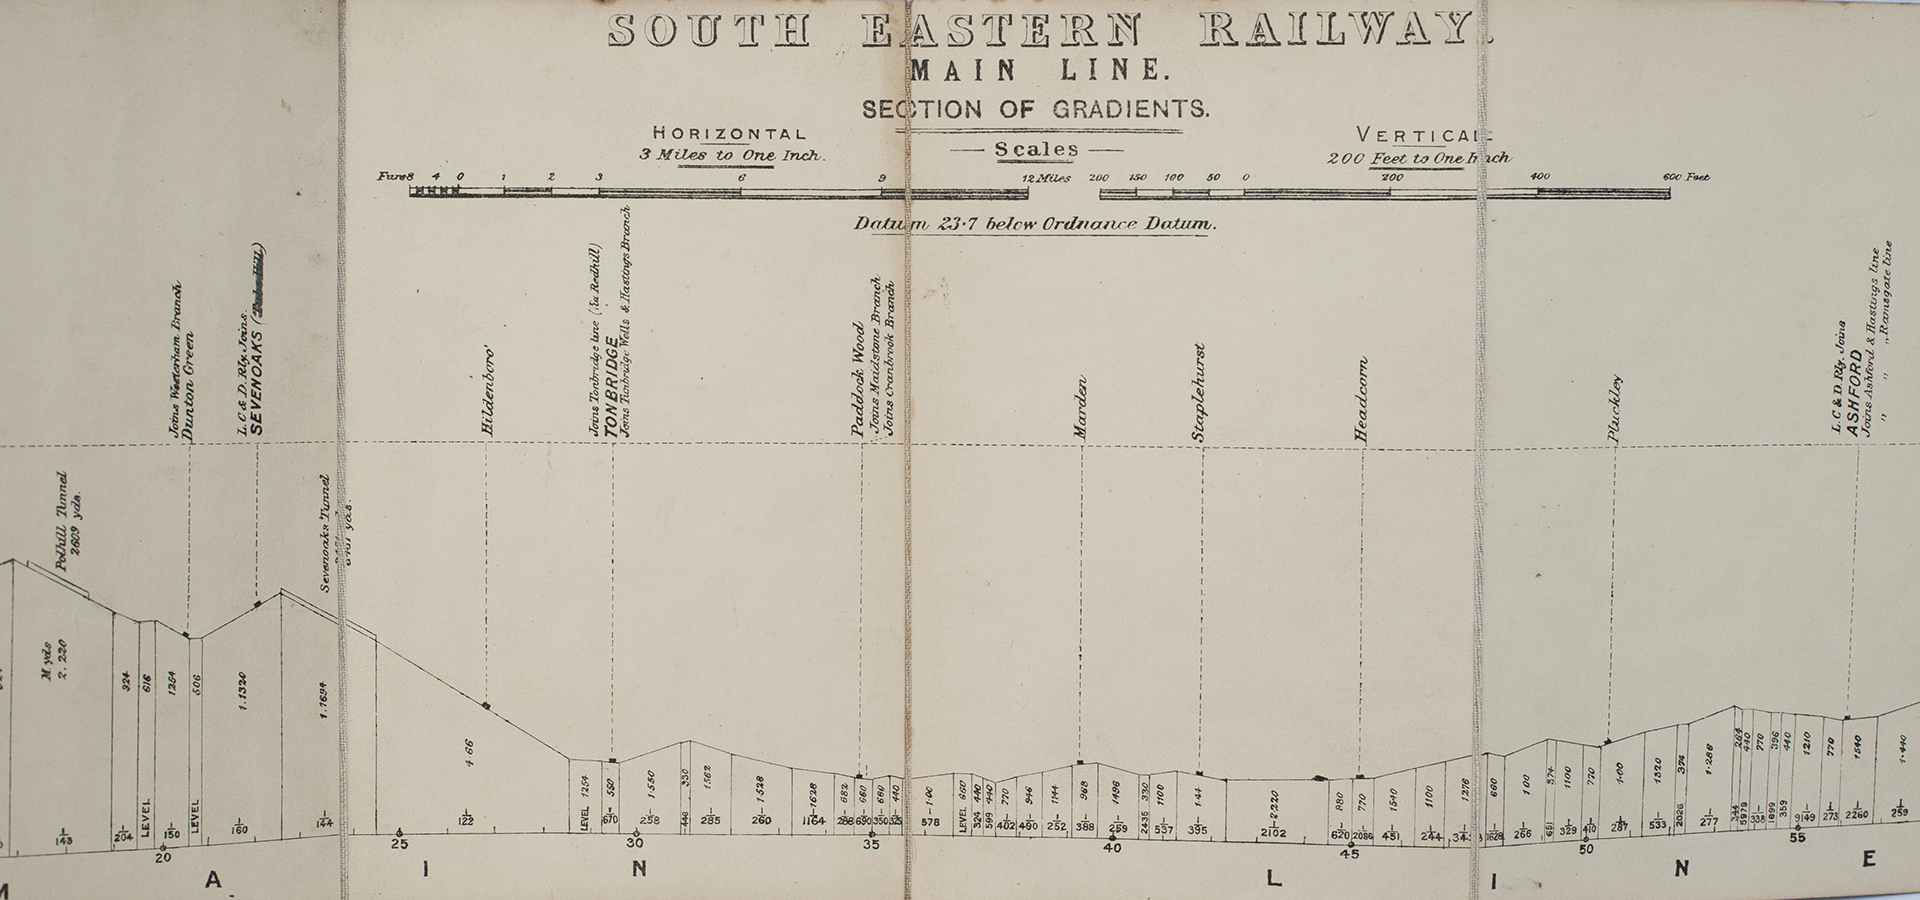 South Eastern & Chatham Railway Linen Diagram Of